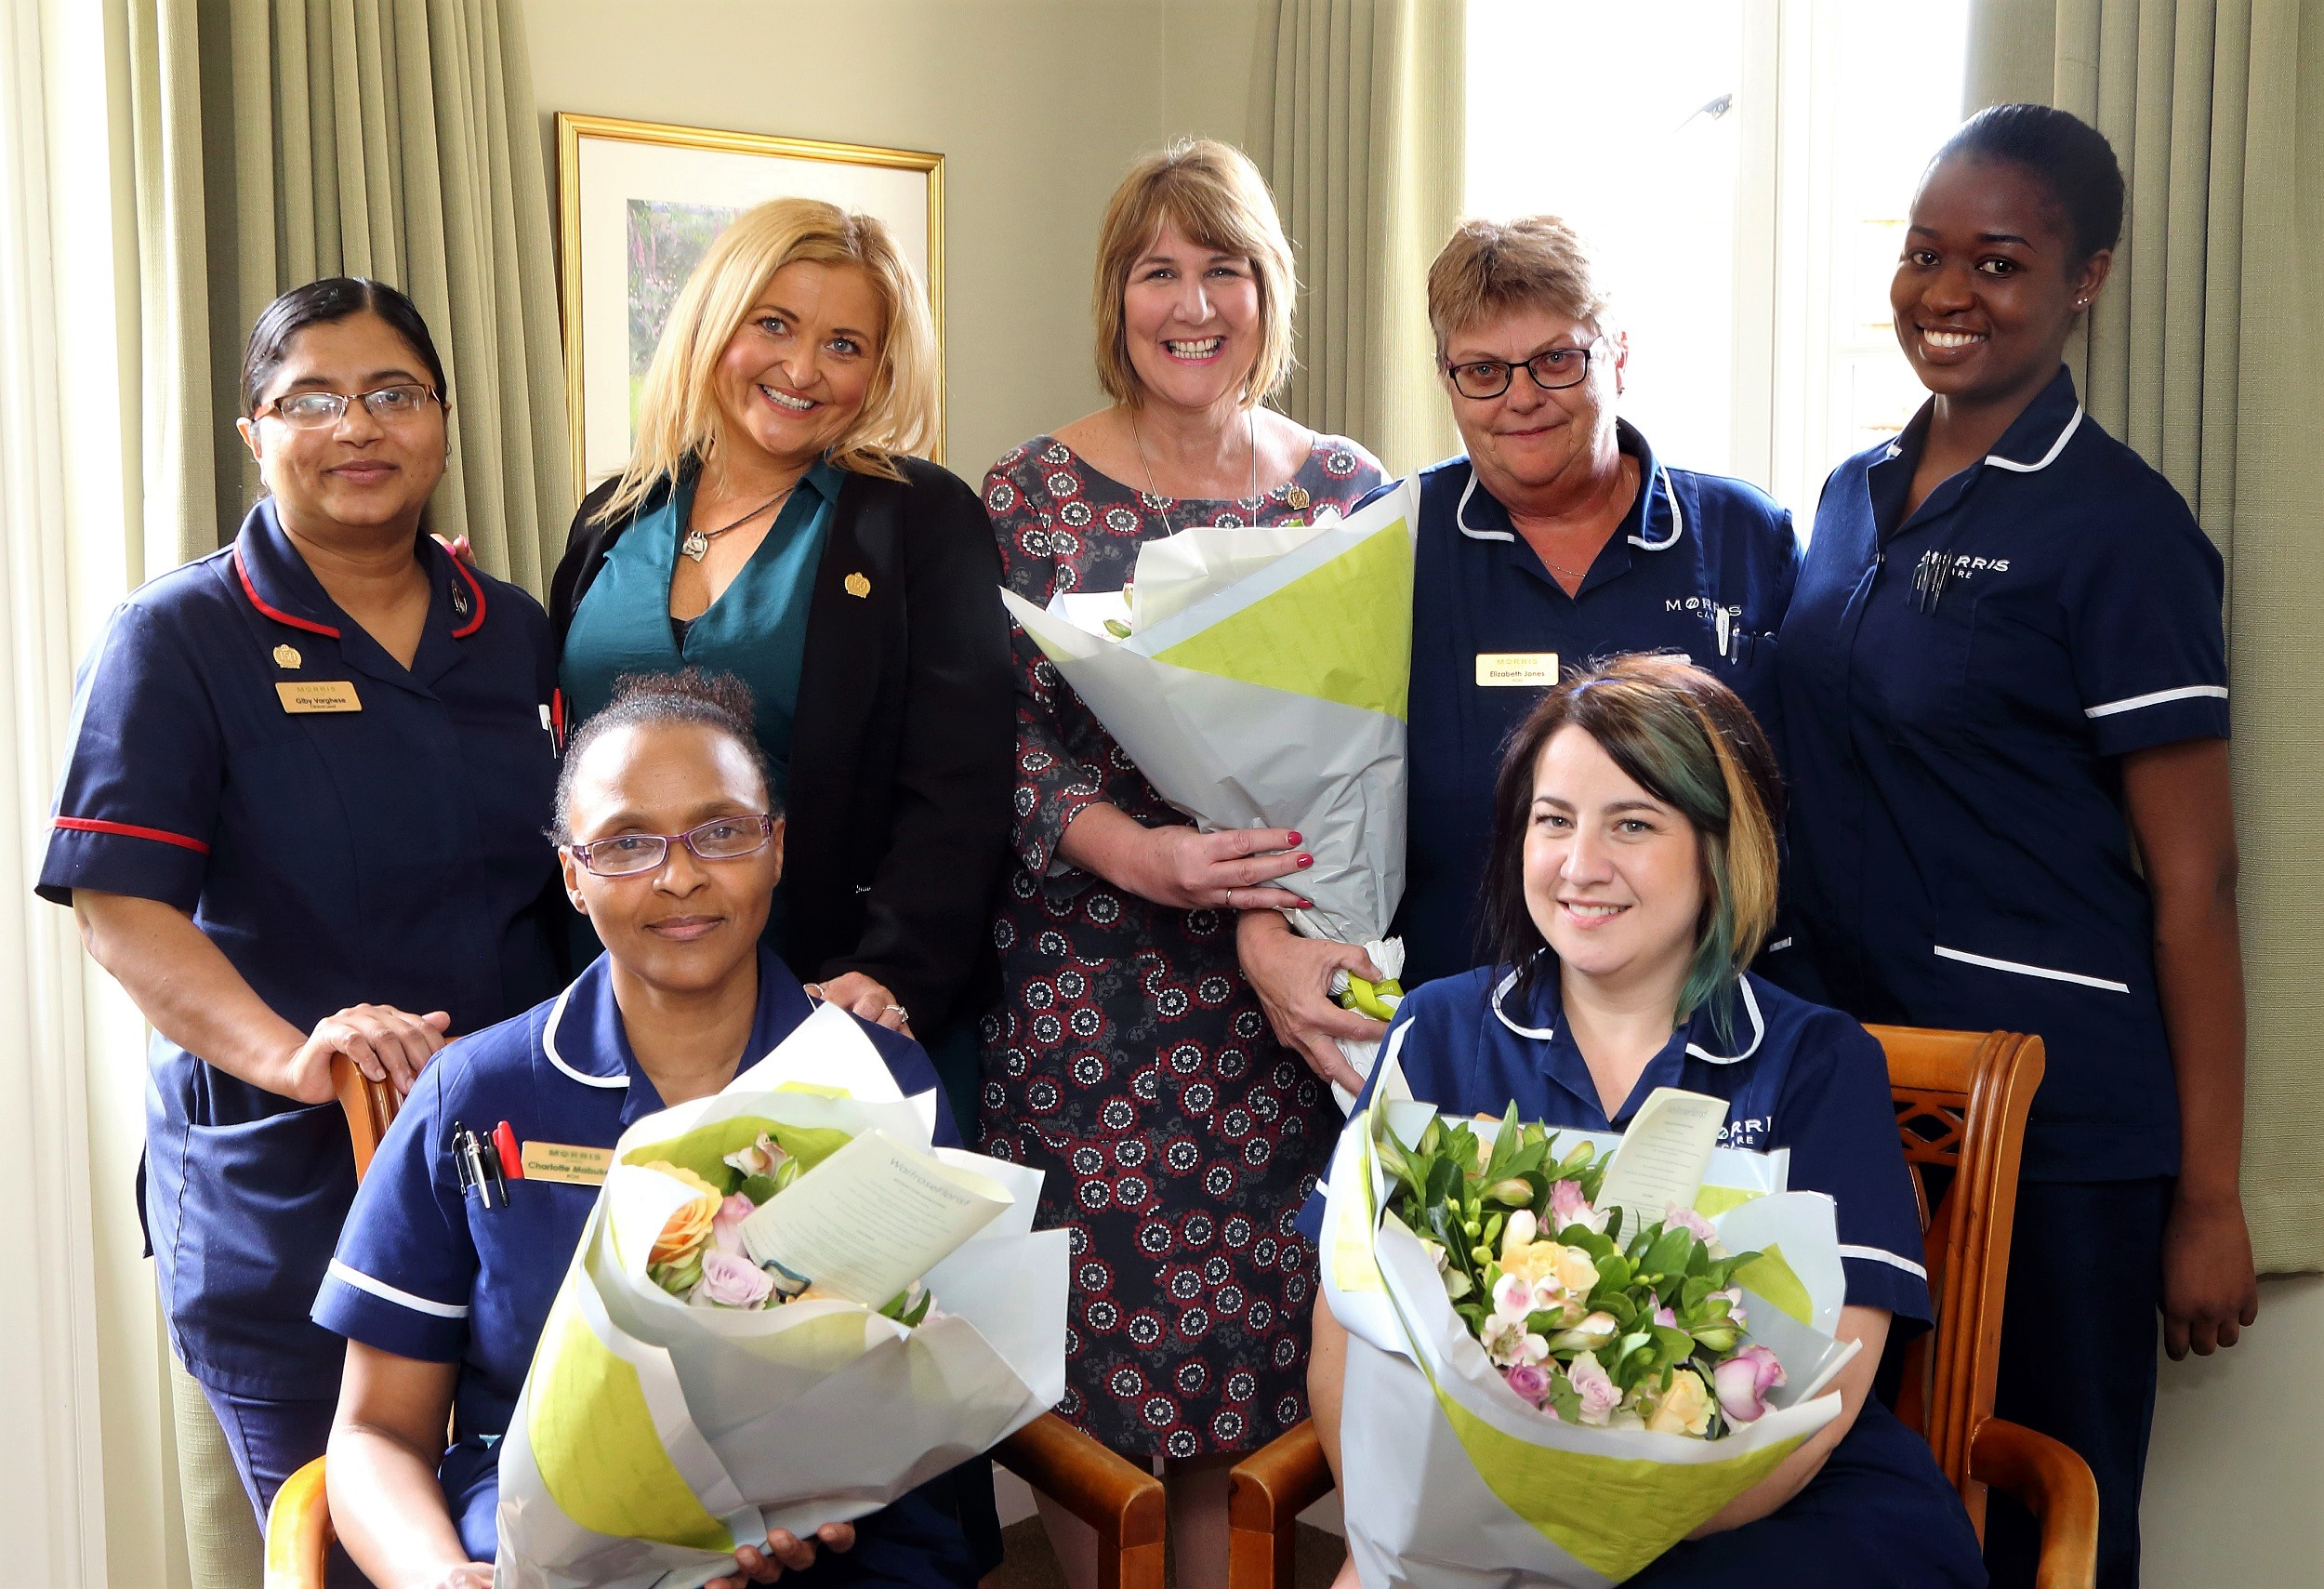 Morris Care Nurses celebrated for International Day